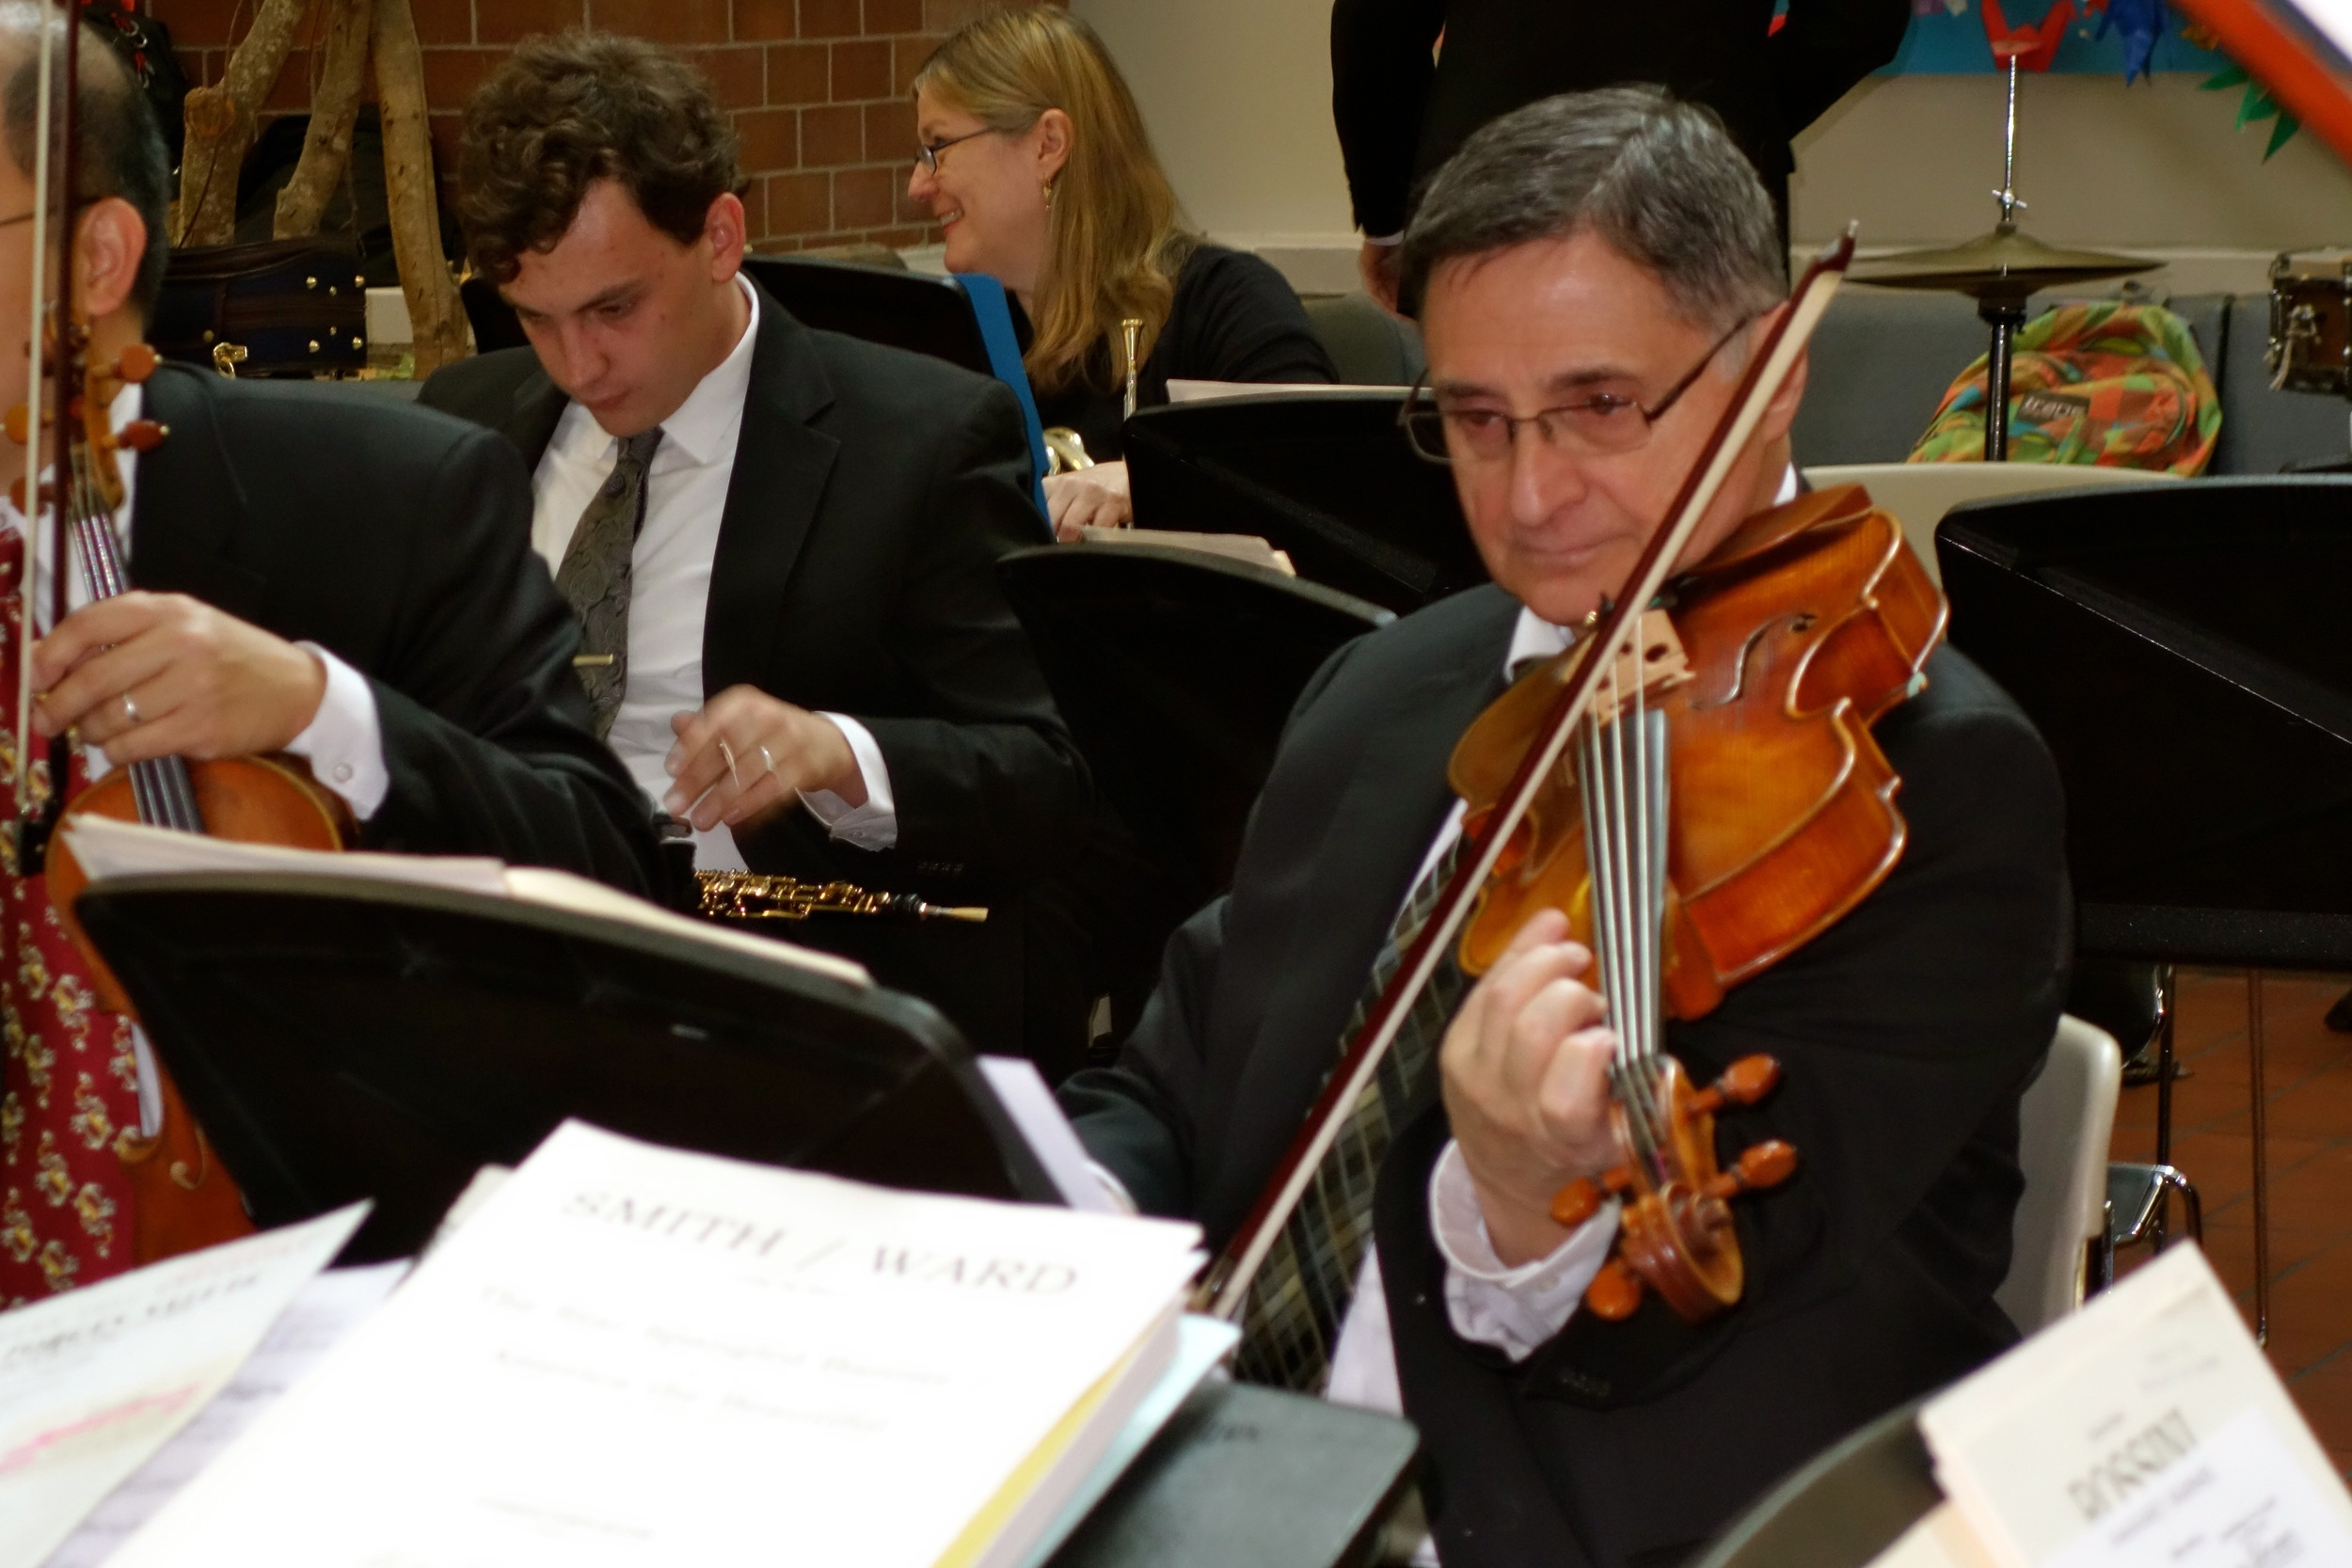 Retired Met violist Ron Carbone returned for the occasion.